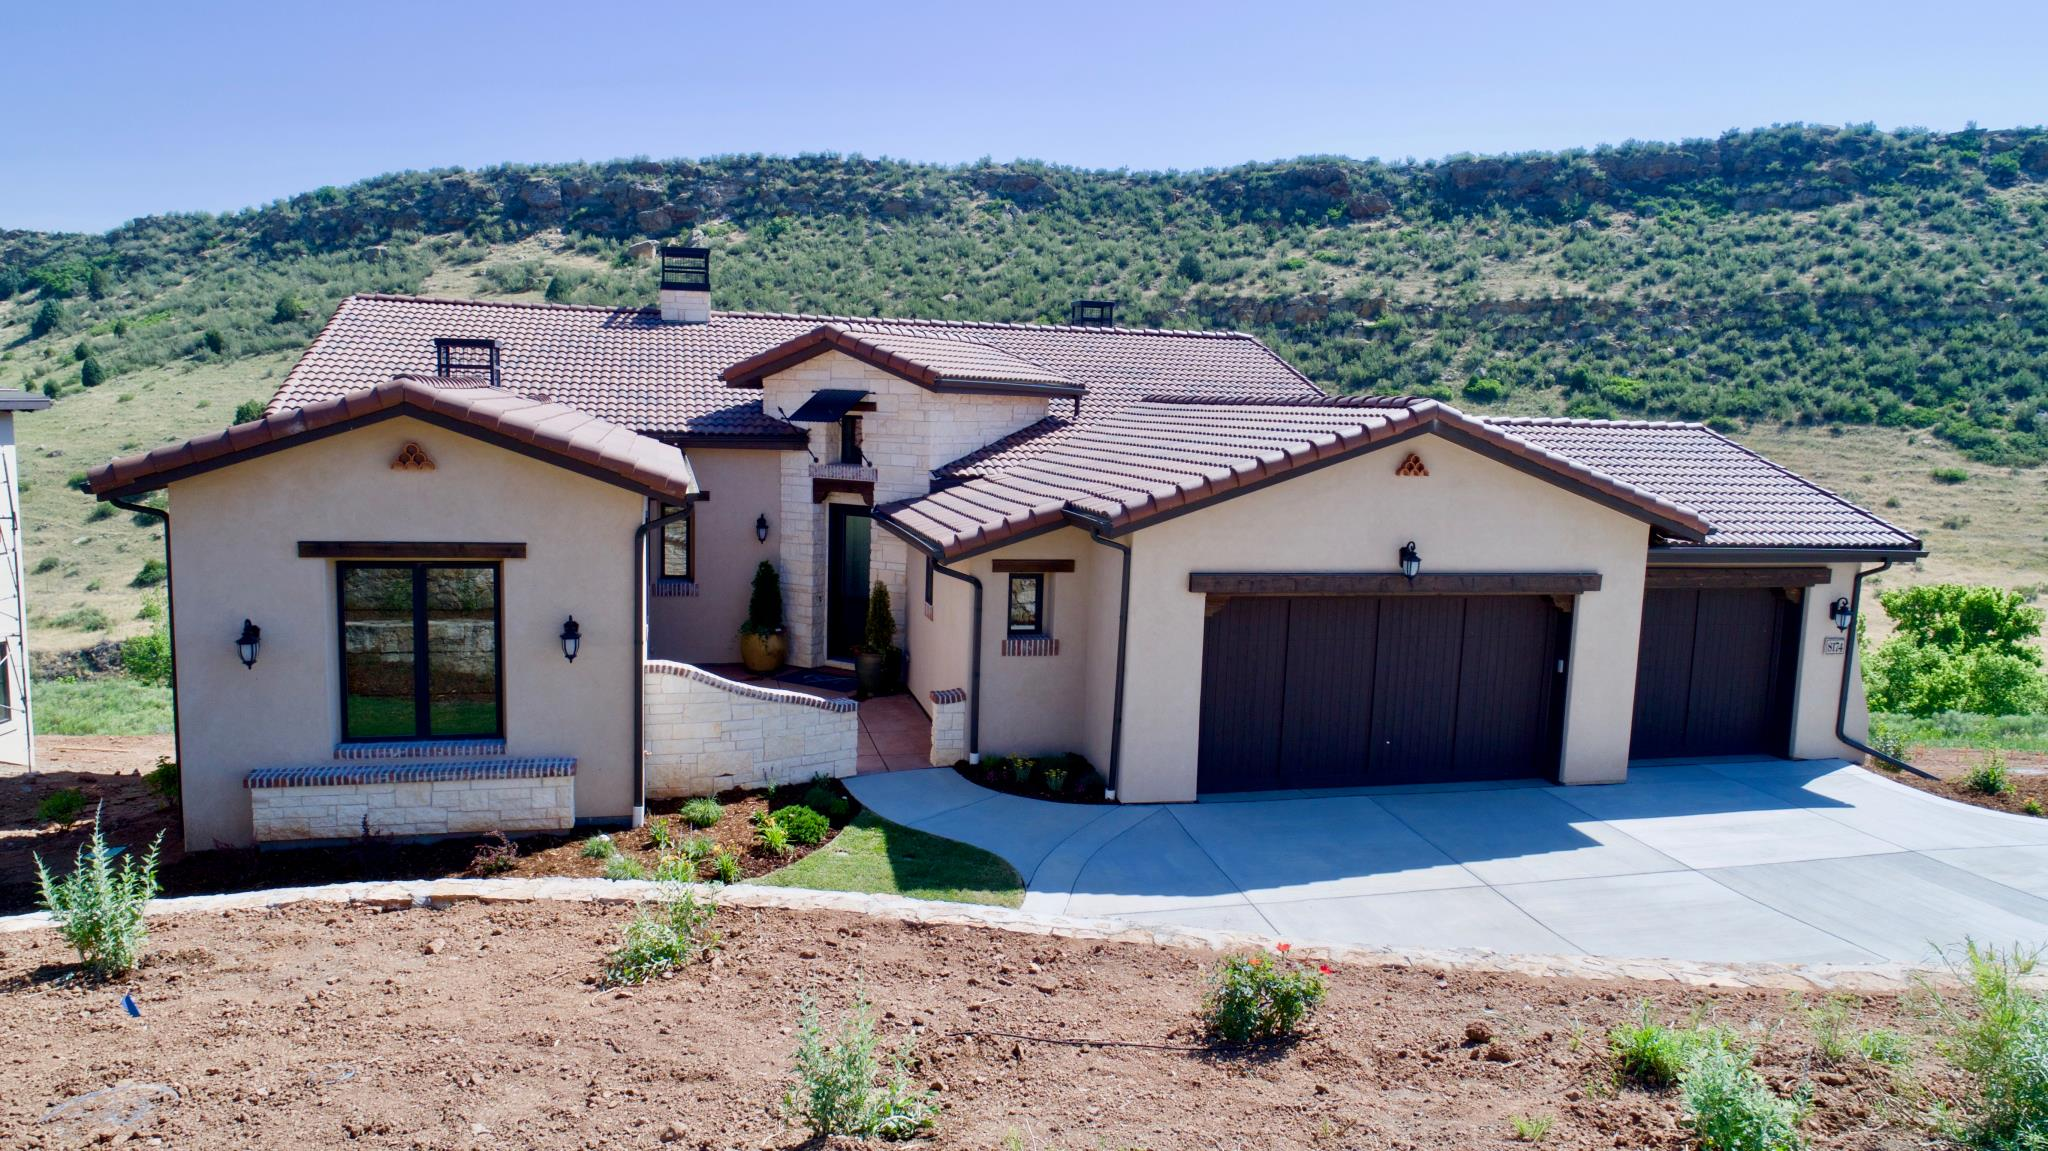 Captivating Ranch Golf Course Homes In Denver And Littleton, Colorado